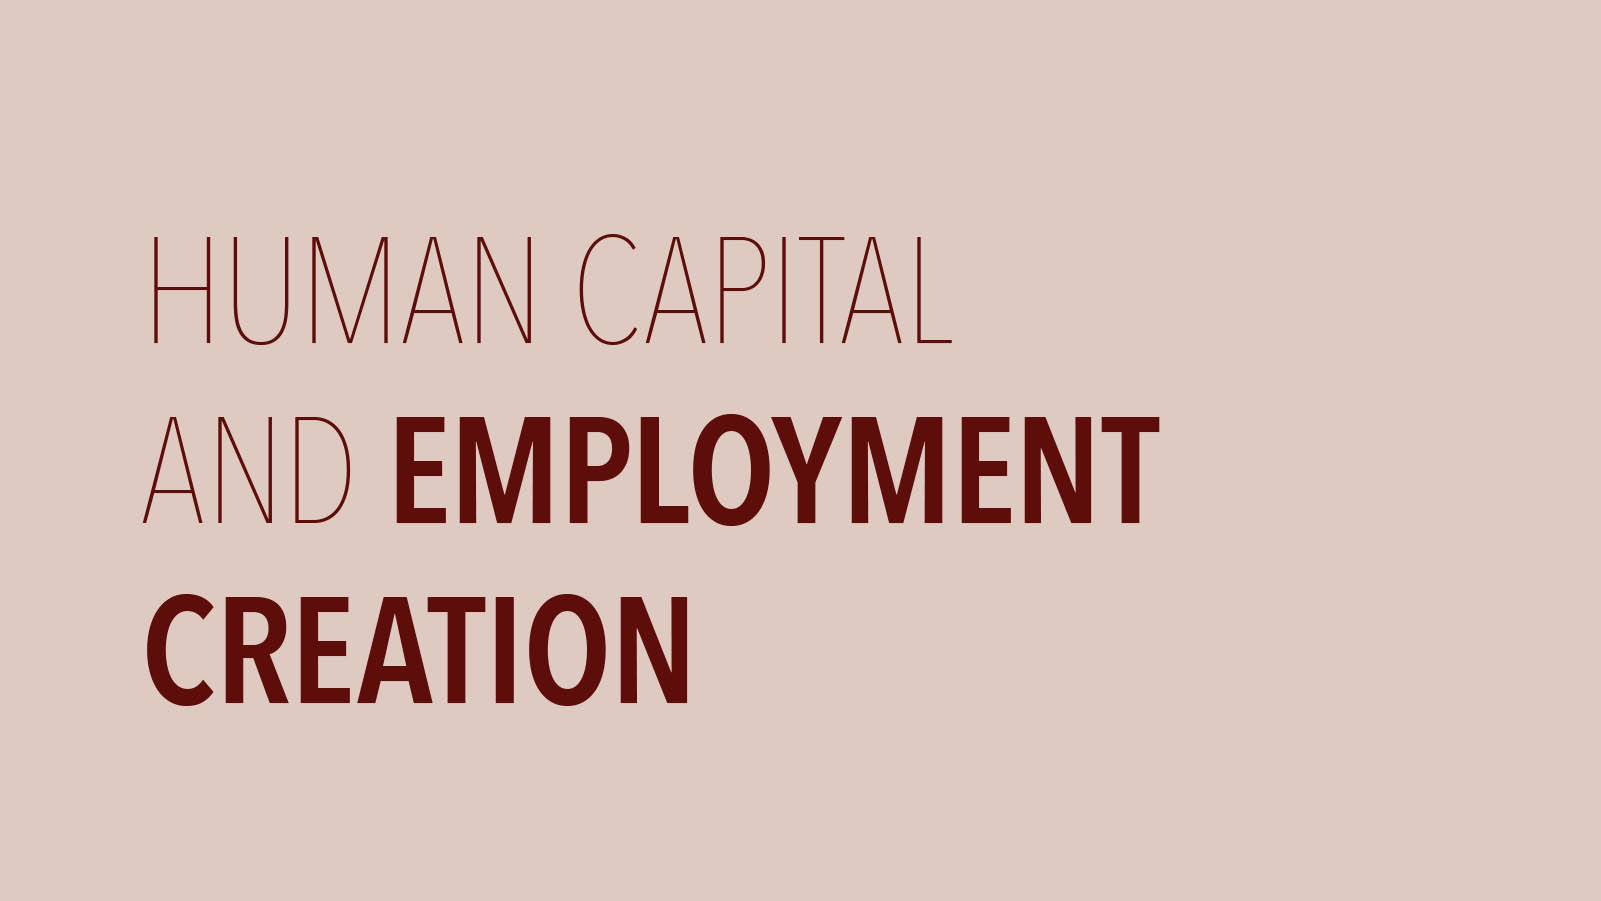 Human Capital and Employment Creation